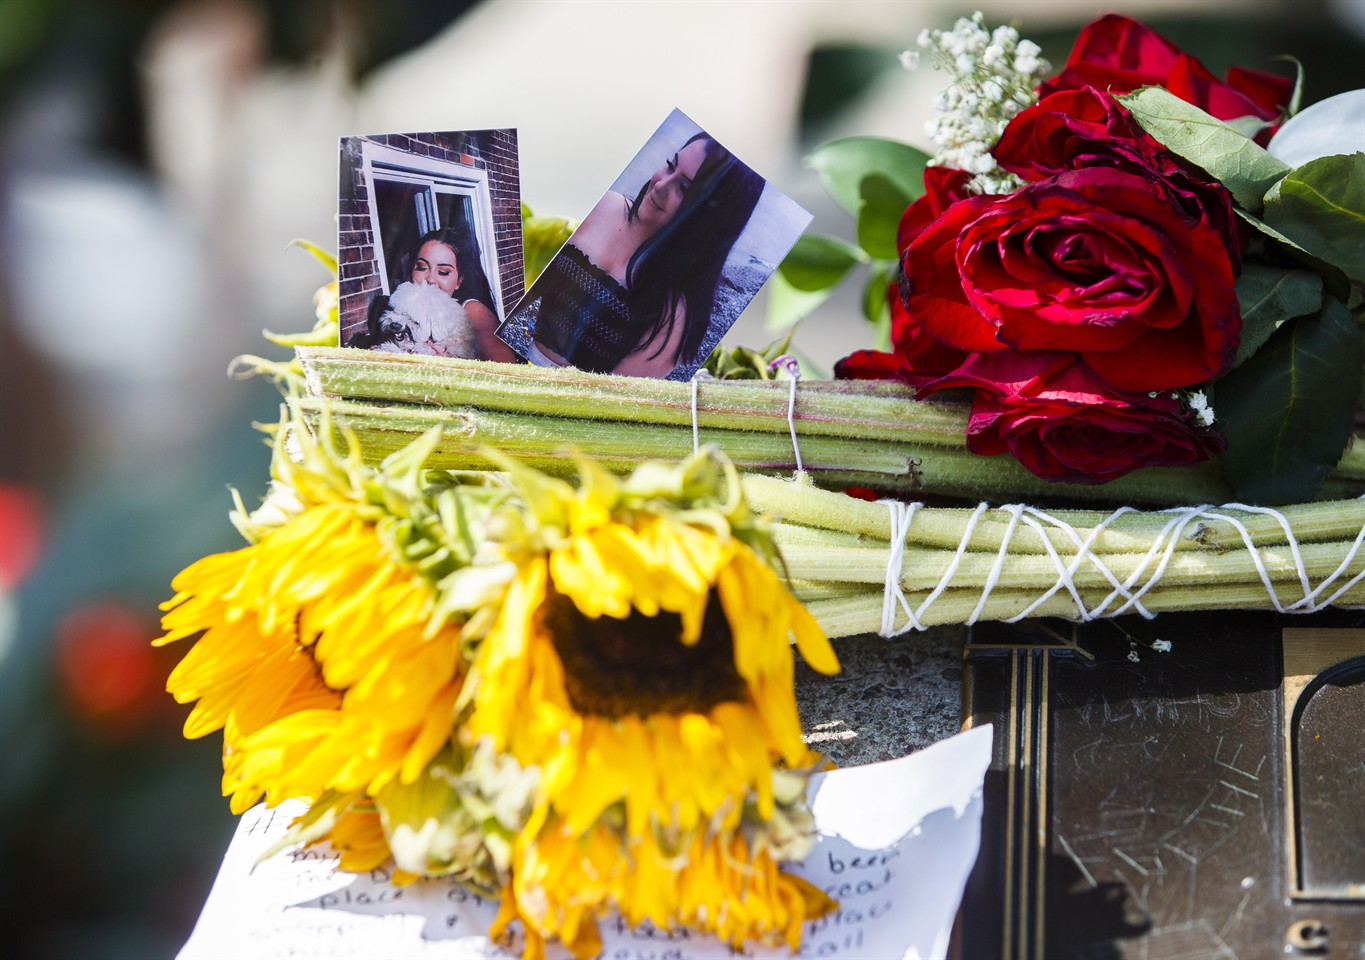 Ceremony planned today to commemorate victims of the